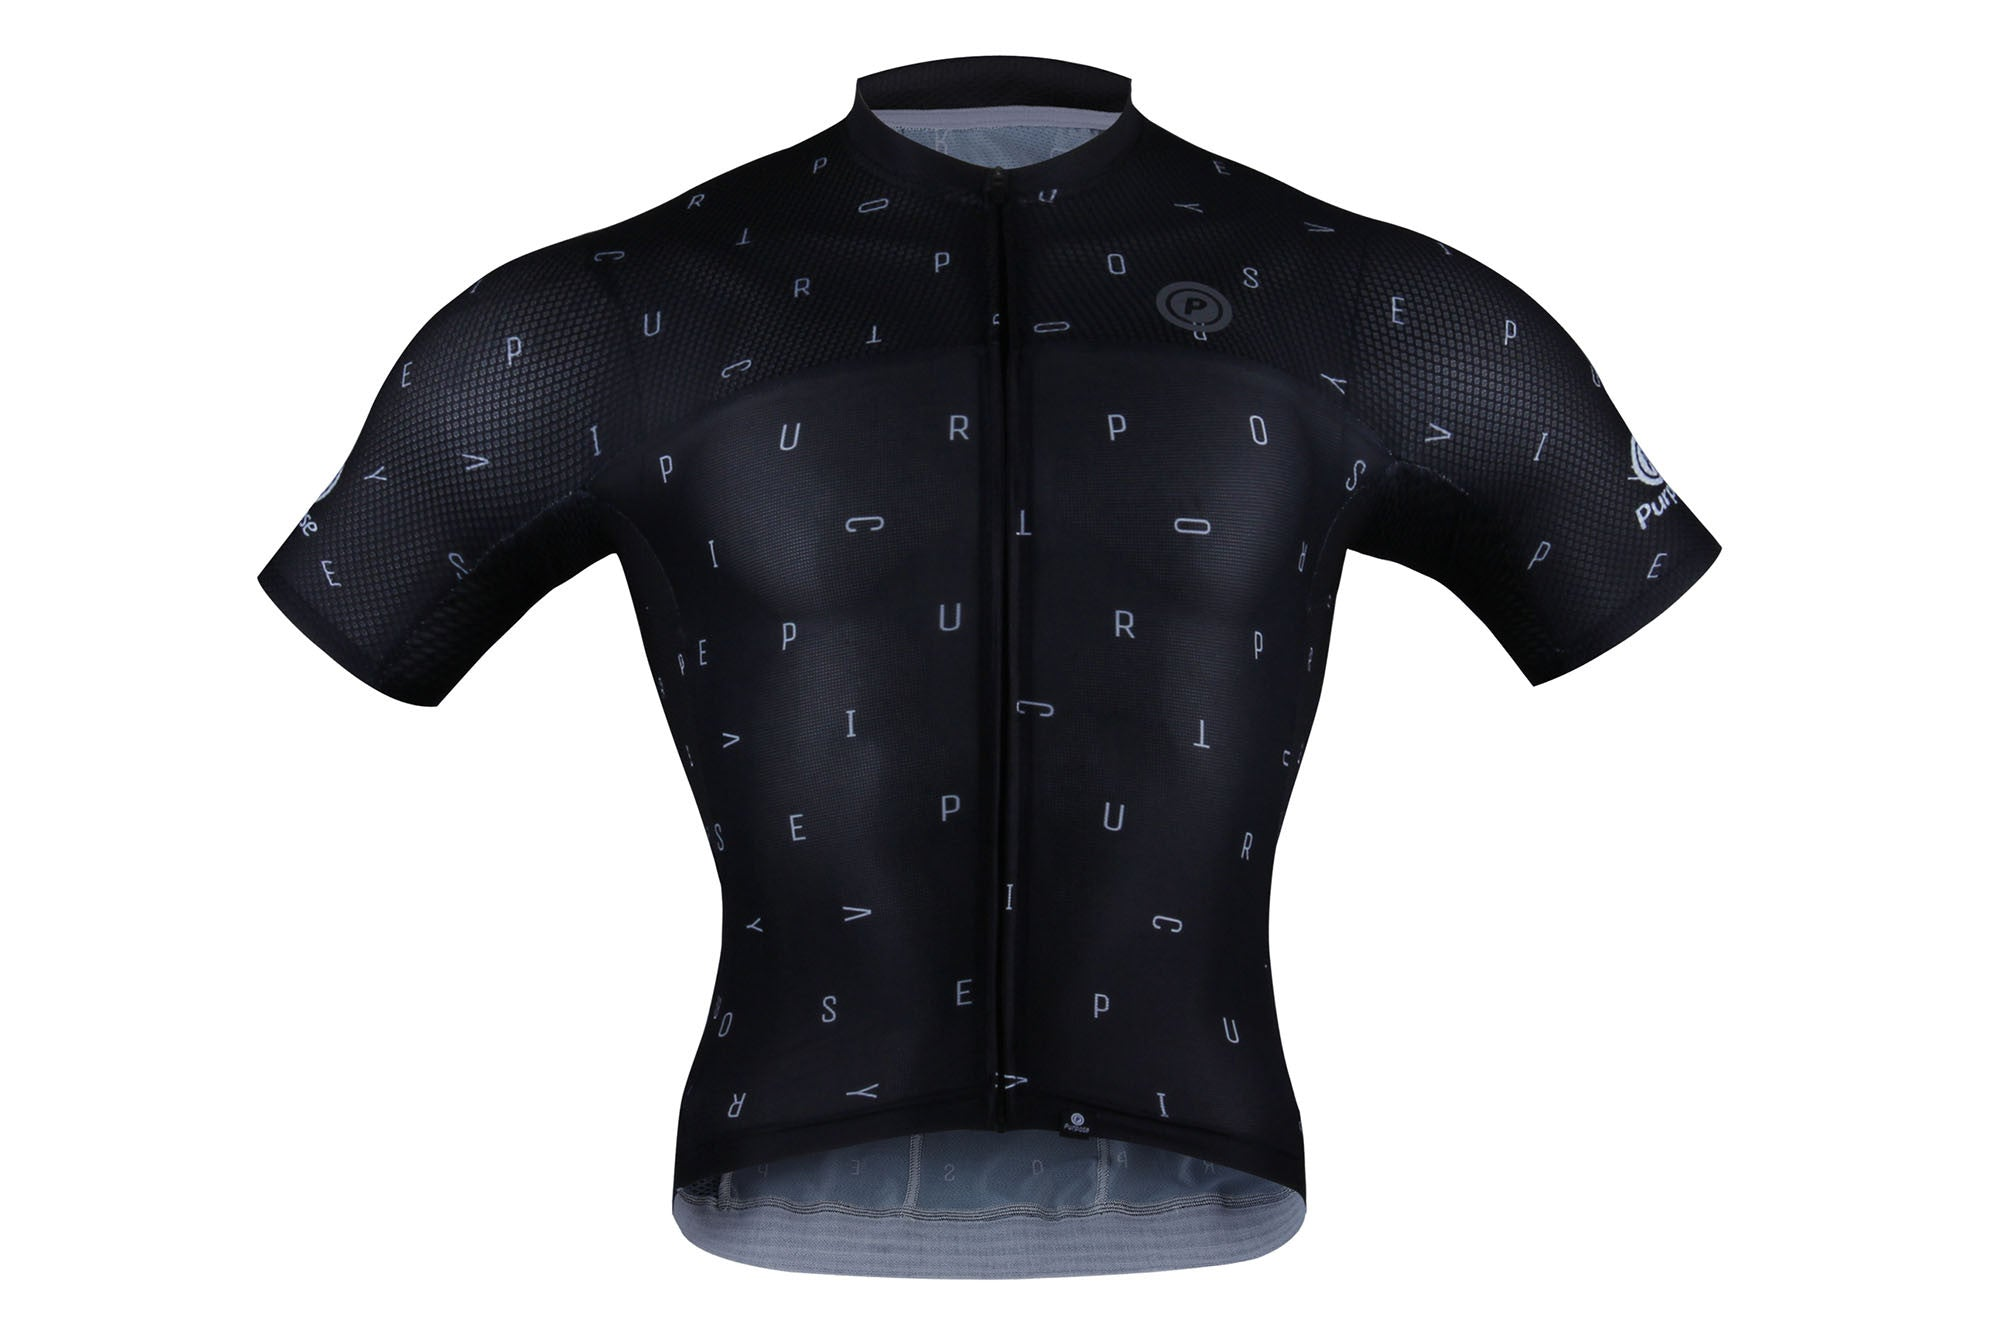 Purpose Victory Elite Racing Tri-Mesh Jersey (Black and White Letters)